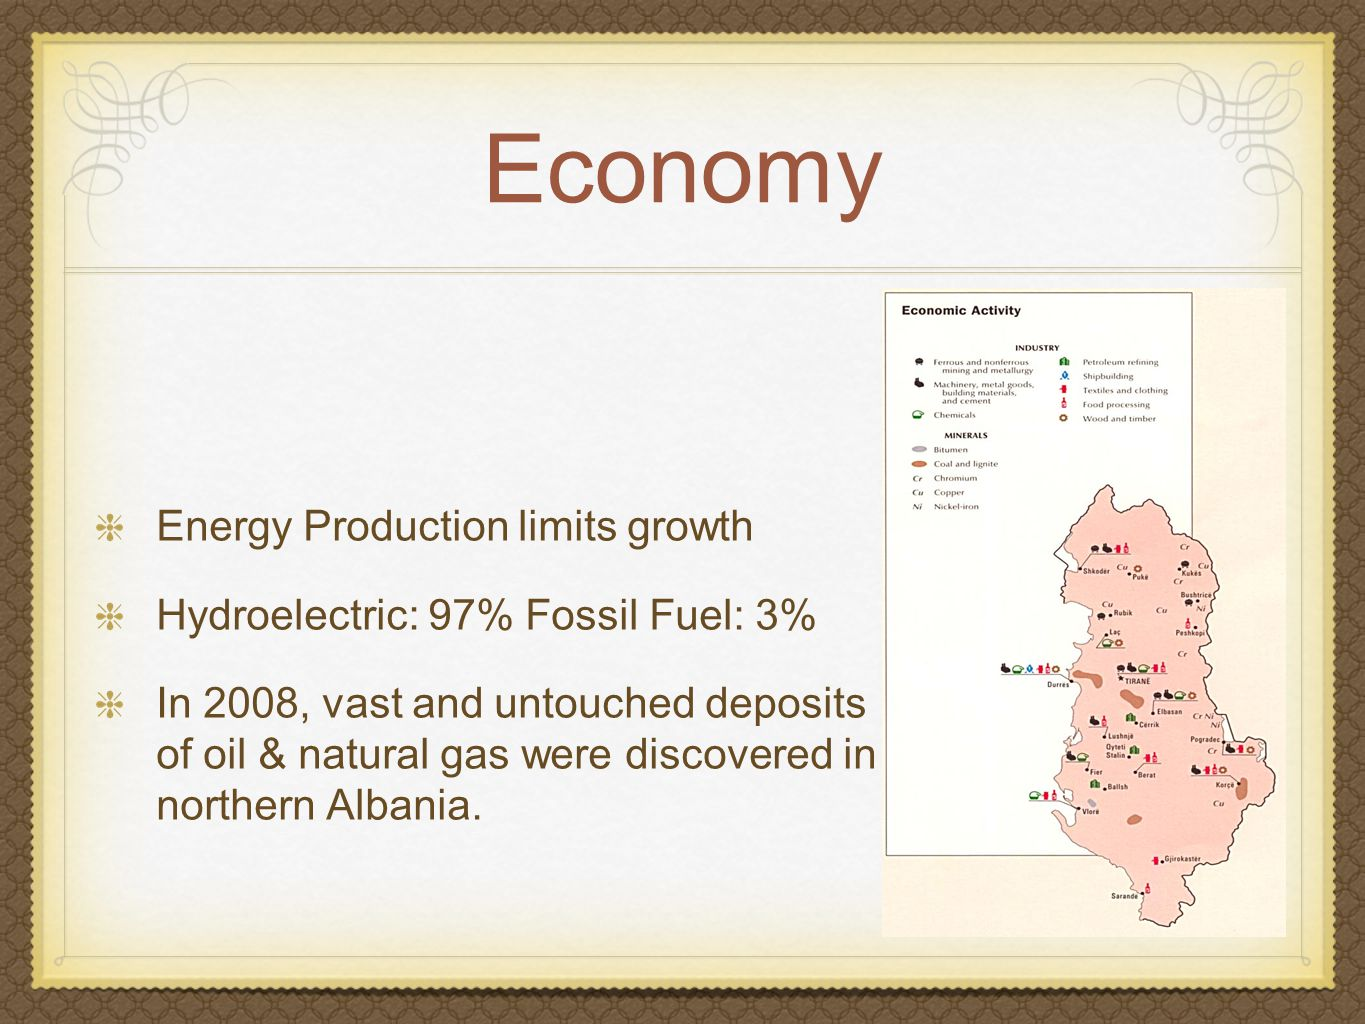 Economy Energy Production limits growth Hydroelectric: 97% Fossil Fuel: 3% In 2008, vast and untouched deposits of oil & natural gas were discovered in northern Albania.